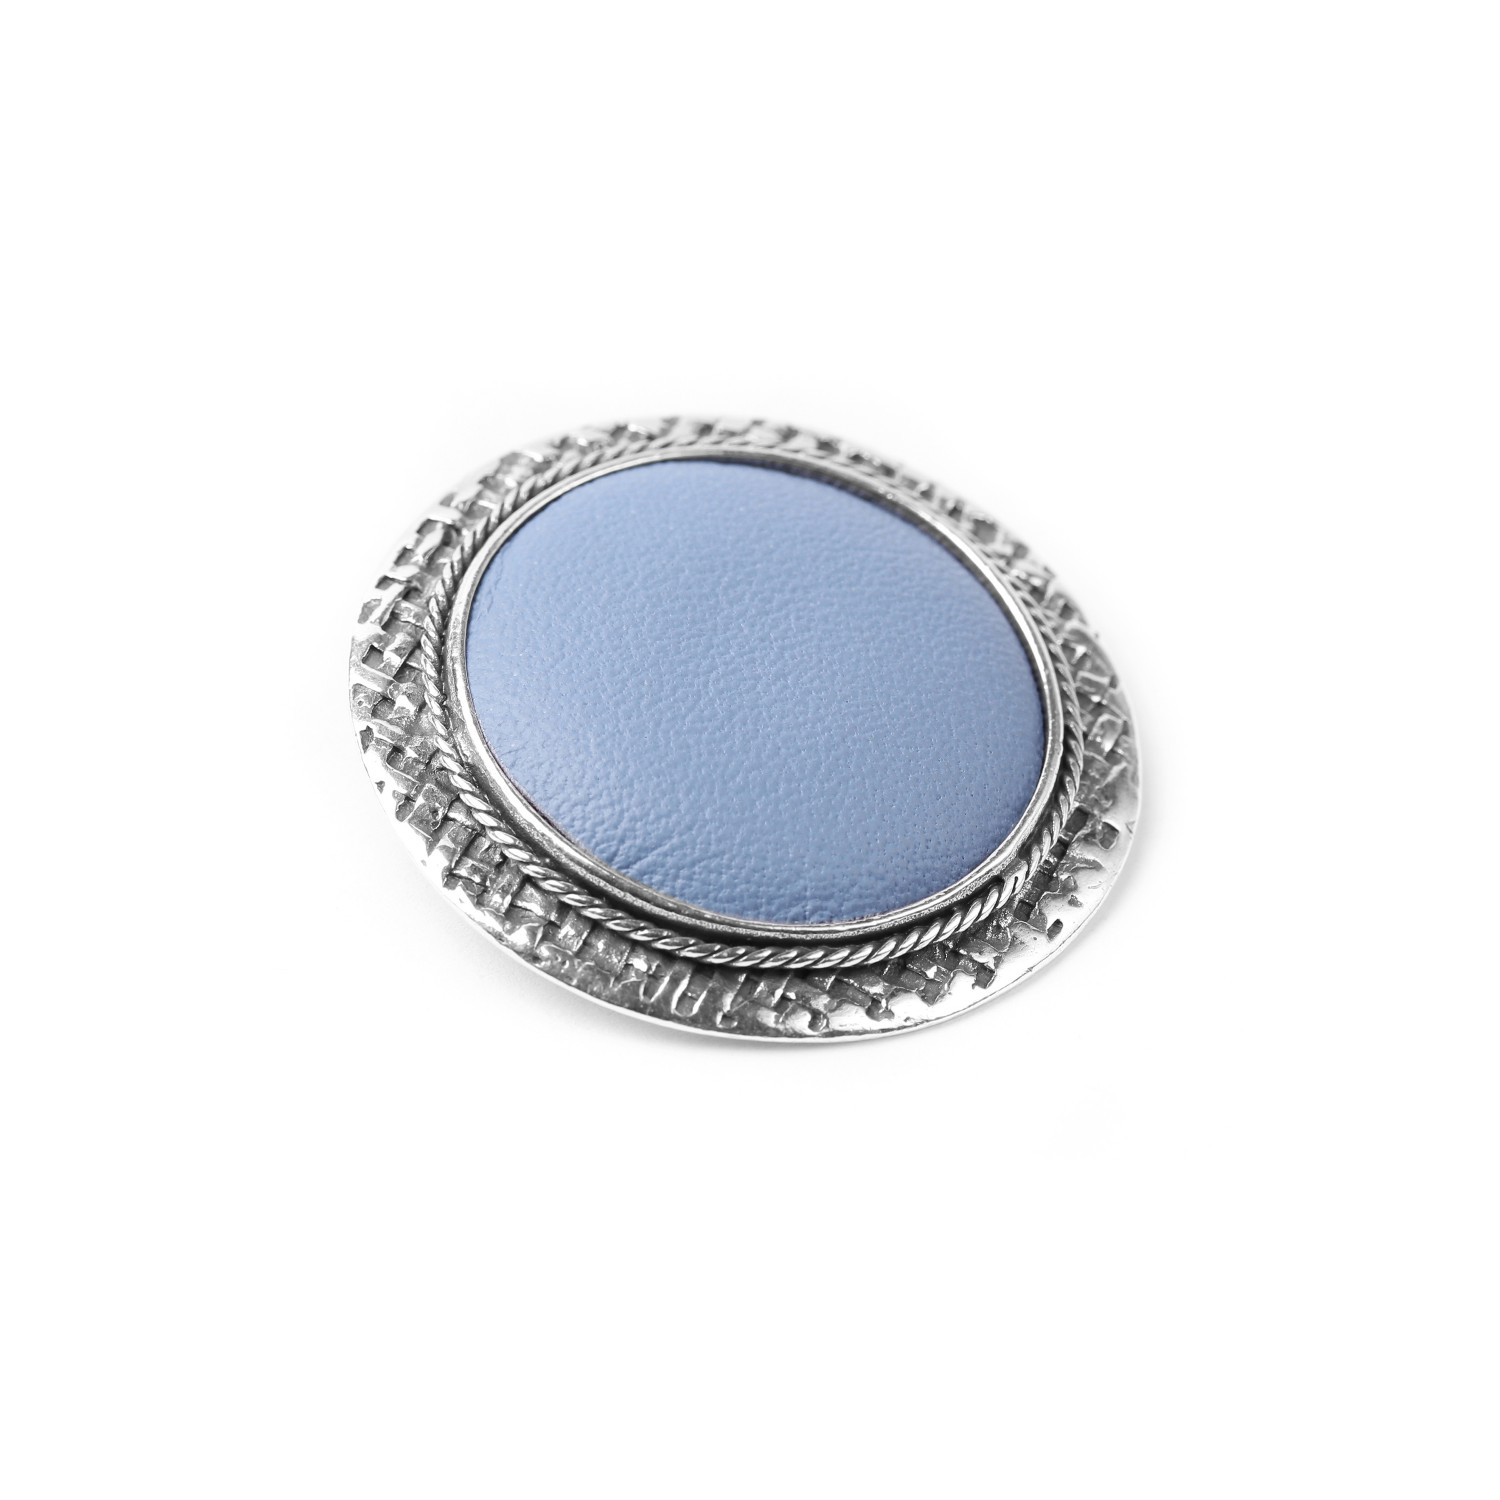 LEATHER broche bleu ciel